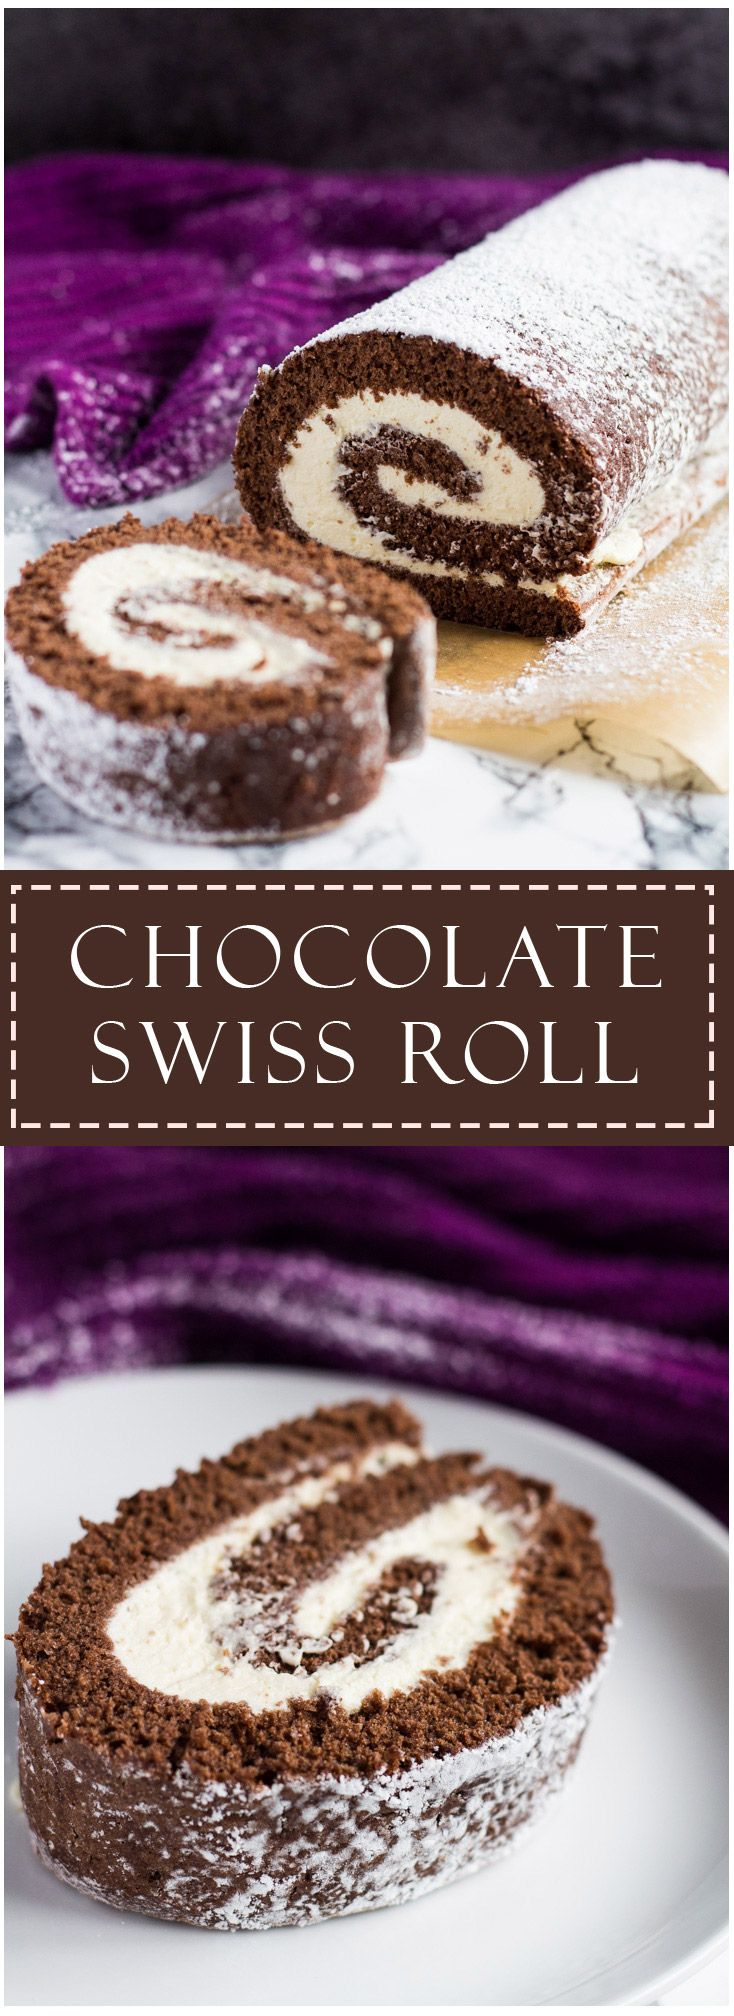 Chocolate Swiss Roll | marshasbakingaddiction.com @marshasbakeblog